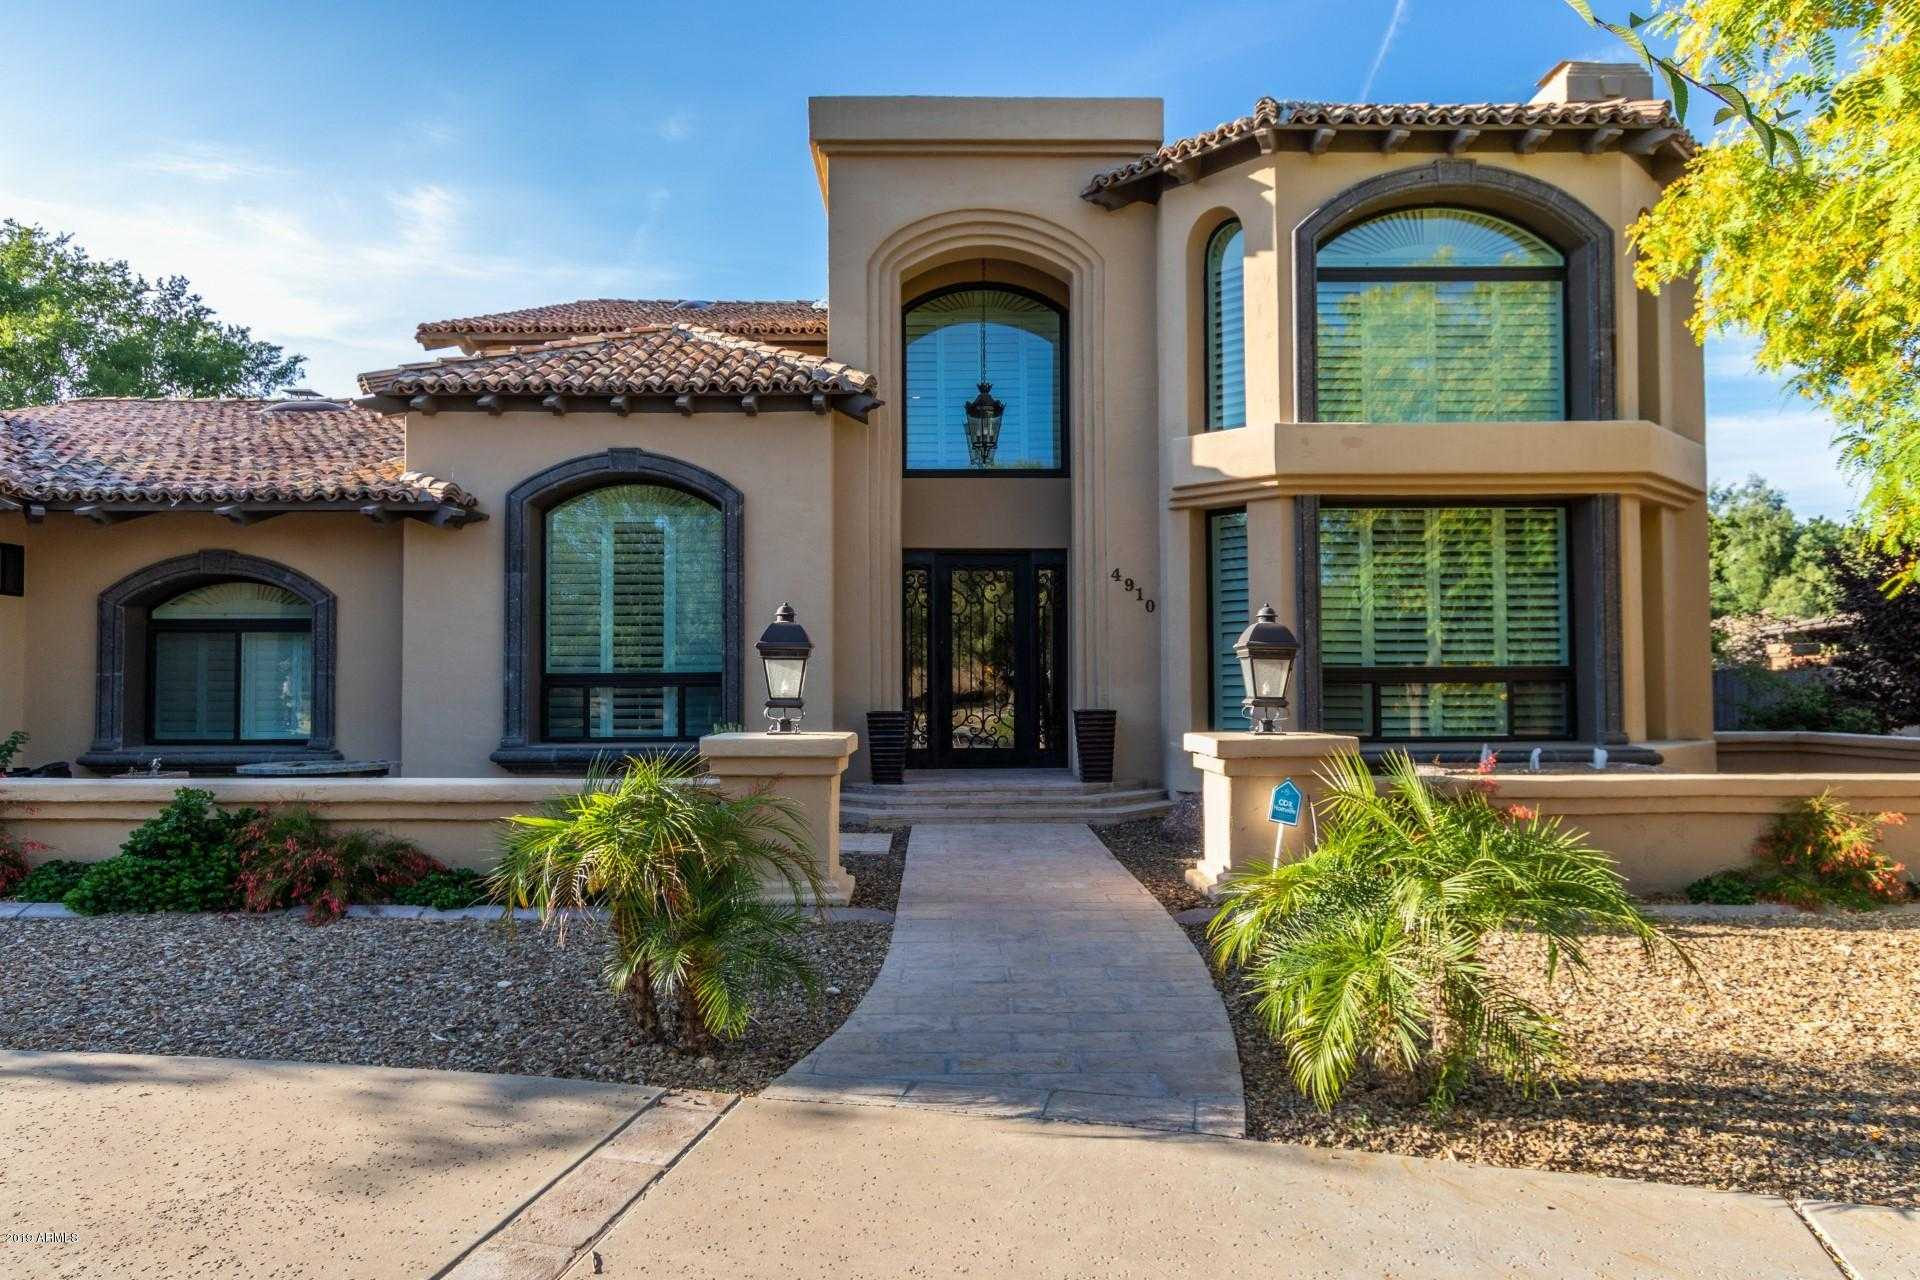 $1,249,000 - 4Br/4Ba - Home for Sale in Firebrand Ranch Lot 1-43, Paradise Valley